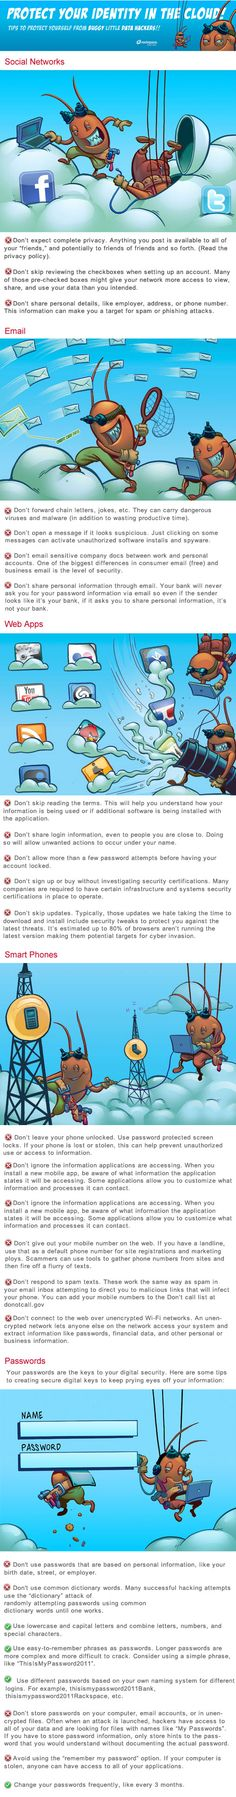 26 Vital Tips For Better Cloud Security [Infographic]